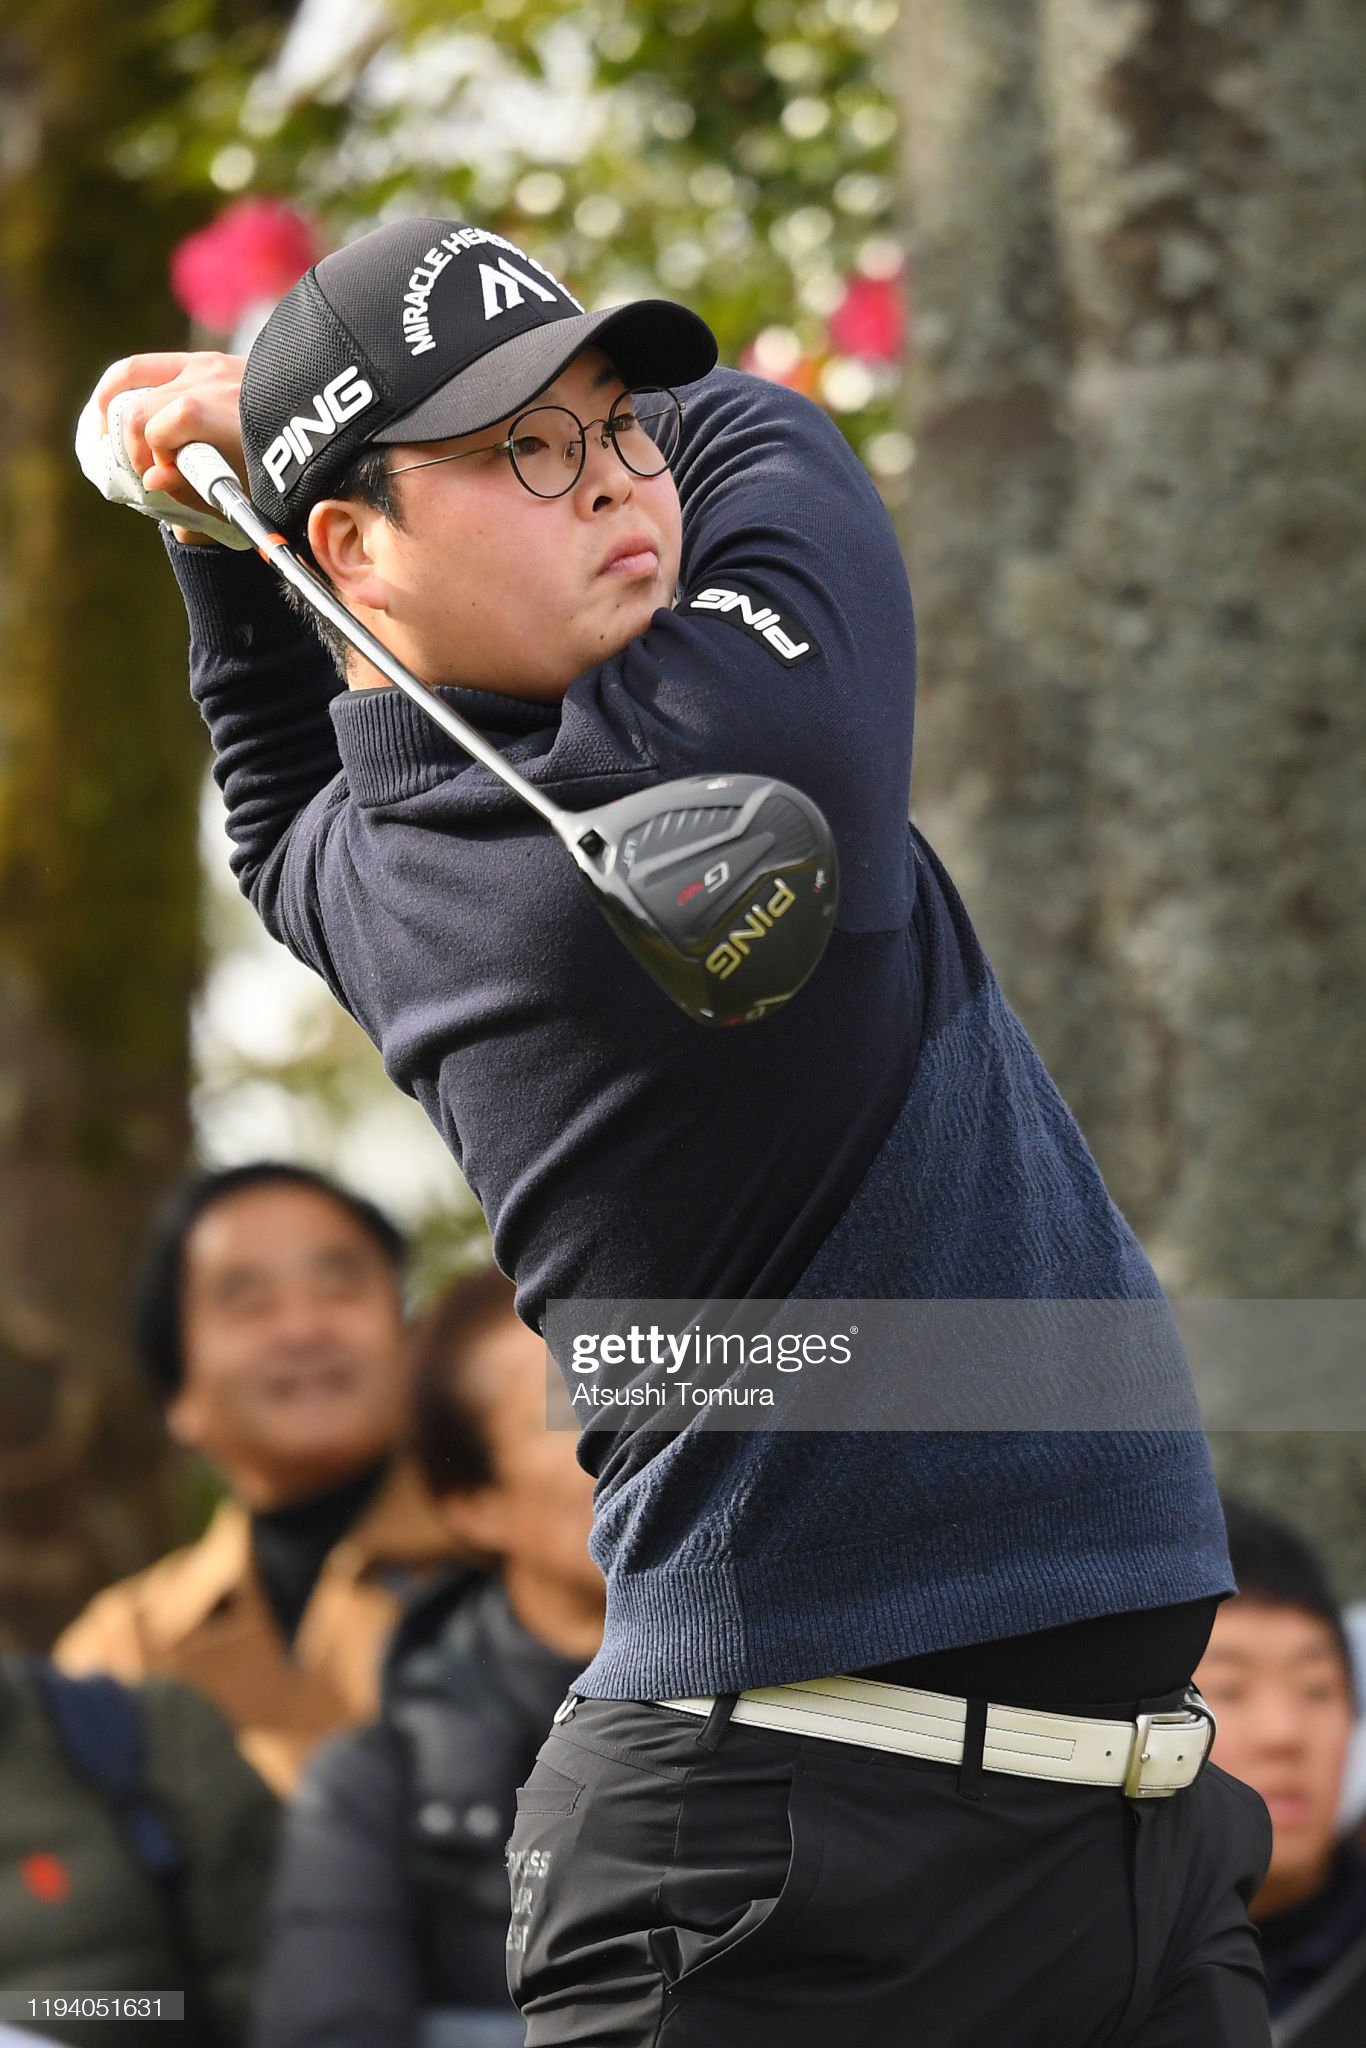 https://media.gettyimages.com/photos/junggon-hwang-of-south-korea-hits-his-tee-shot-on-the-2nd-hole-during-picture-id1194051631?s=2048x2048